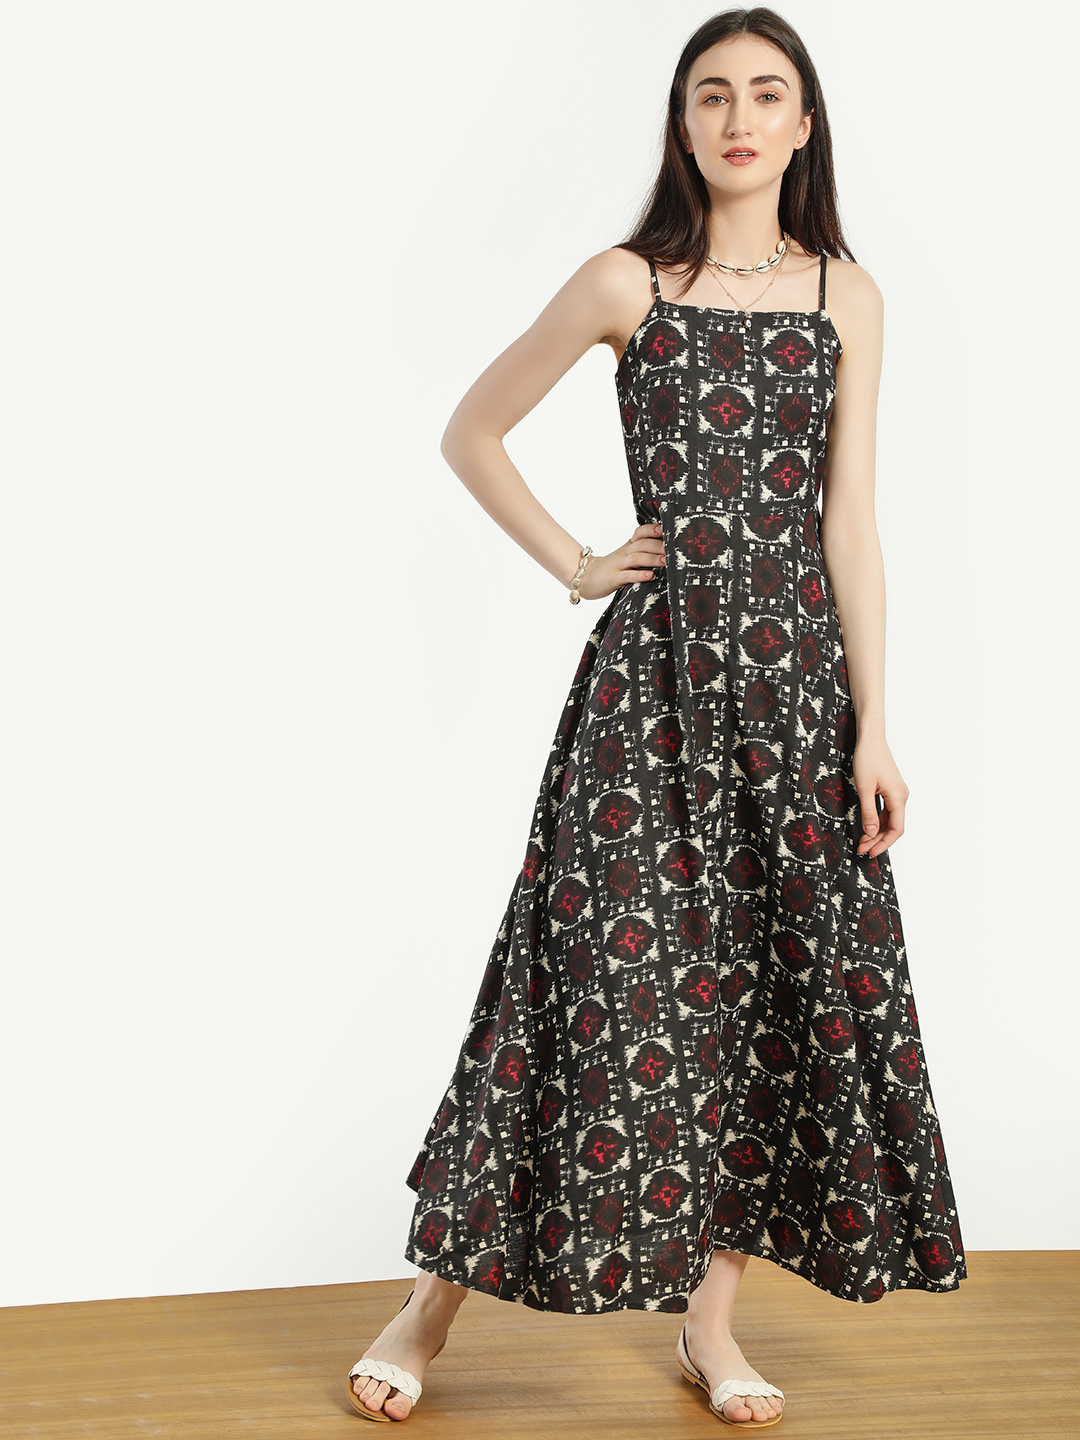 Kisscoast Print All Over Print Maxi Dress 1